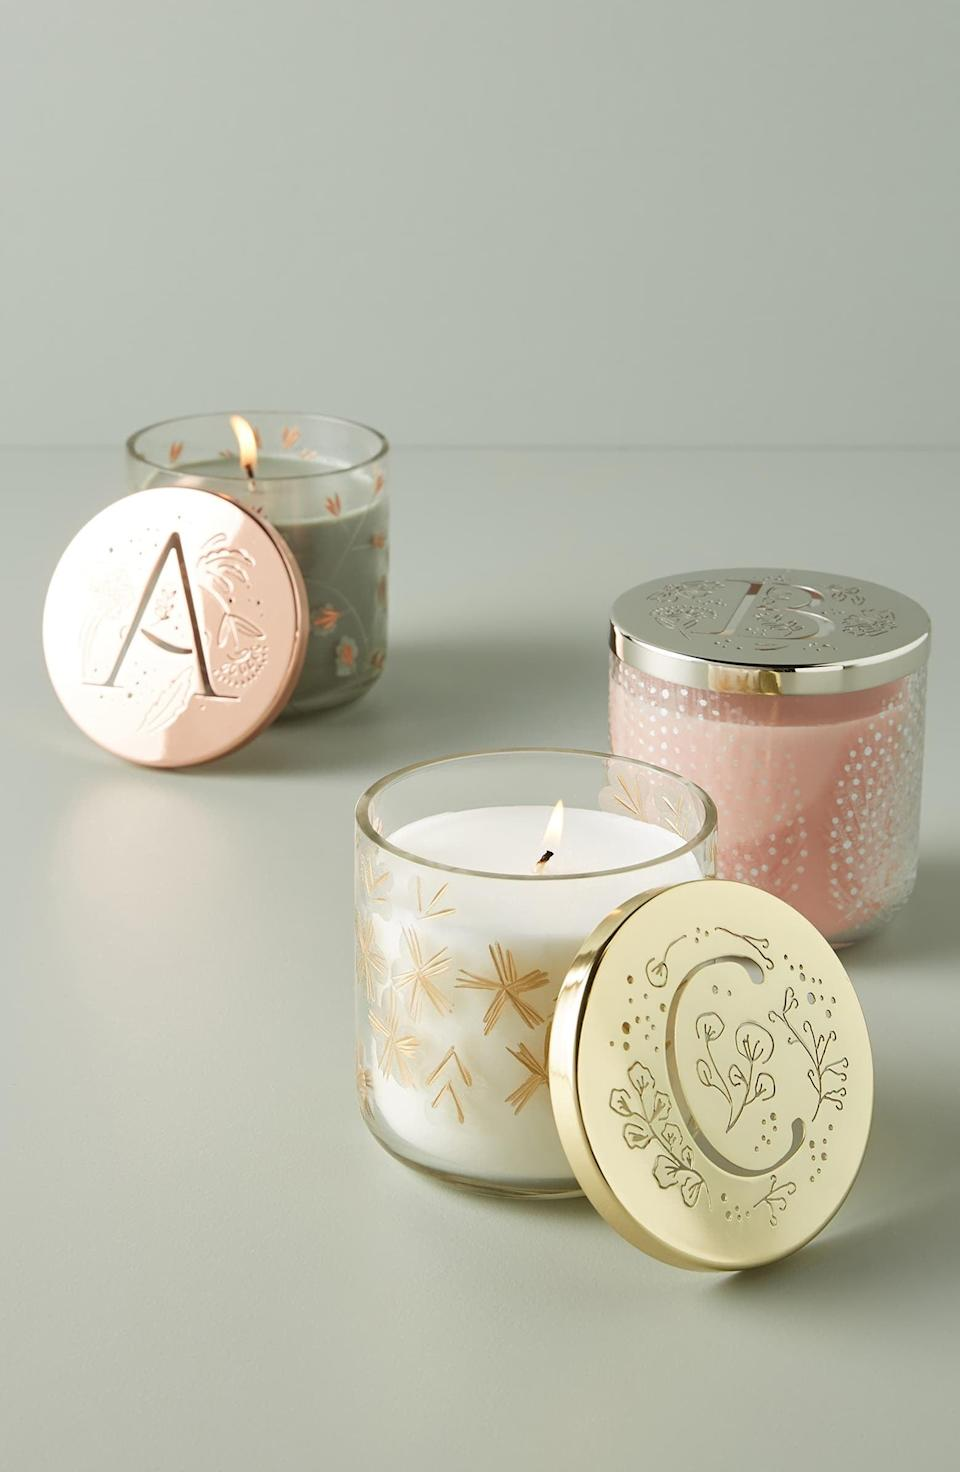 "<p>Make them feel special with this <a href=""https://www.popsugar.com/buy/Anthropologie-Lumi-Monogram-Scented-Candle-532946?p_name=Anthropologie%20Lumi%20Monogram%20Scented%20Candle&retailer=shop.nordstrom.com&pid=532946&price=28&evar1=fab%3Aus&evar9=36291197&evar98=https%3A%2F%2Fwww.popsugar.com%2Ffashion%2Fphoto-gallery%2F36291197%2Fimage%2F47027893%2FAnthropologie-Lumi-Monogram-Scented-Candle&list1=shopping%2Choliday%2Cwinter%2Cgift%20guide%2Cwinter%20fashion%2Choliday%20fashion%2Cfashion%20gifts&prop13=api&pdata=1"" rel=""nofollow noopener"" class=""link rapid-noclick-resp"" target=""_blank"" data-ylk=""slk:Anthropologie Lumi Monogram Scented Candle"">Anthropologie Lumi Monogram Scented Candle</a> ($28).</p>"